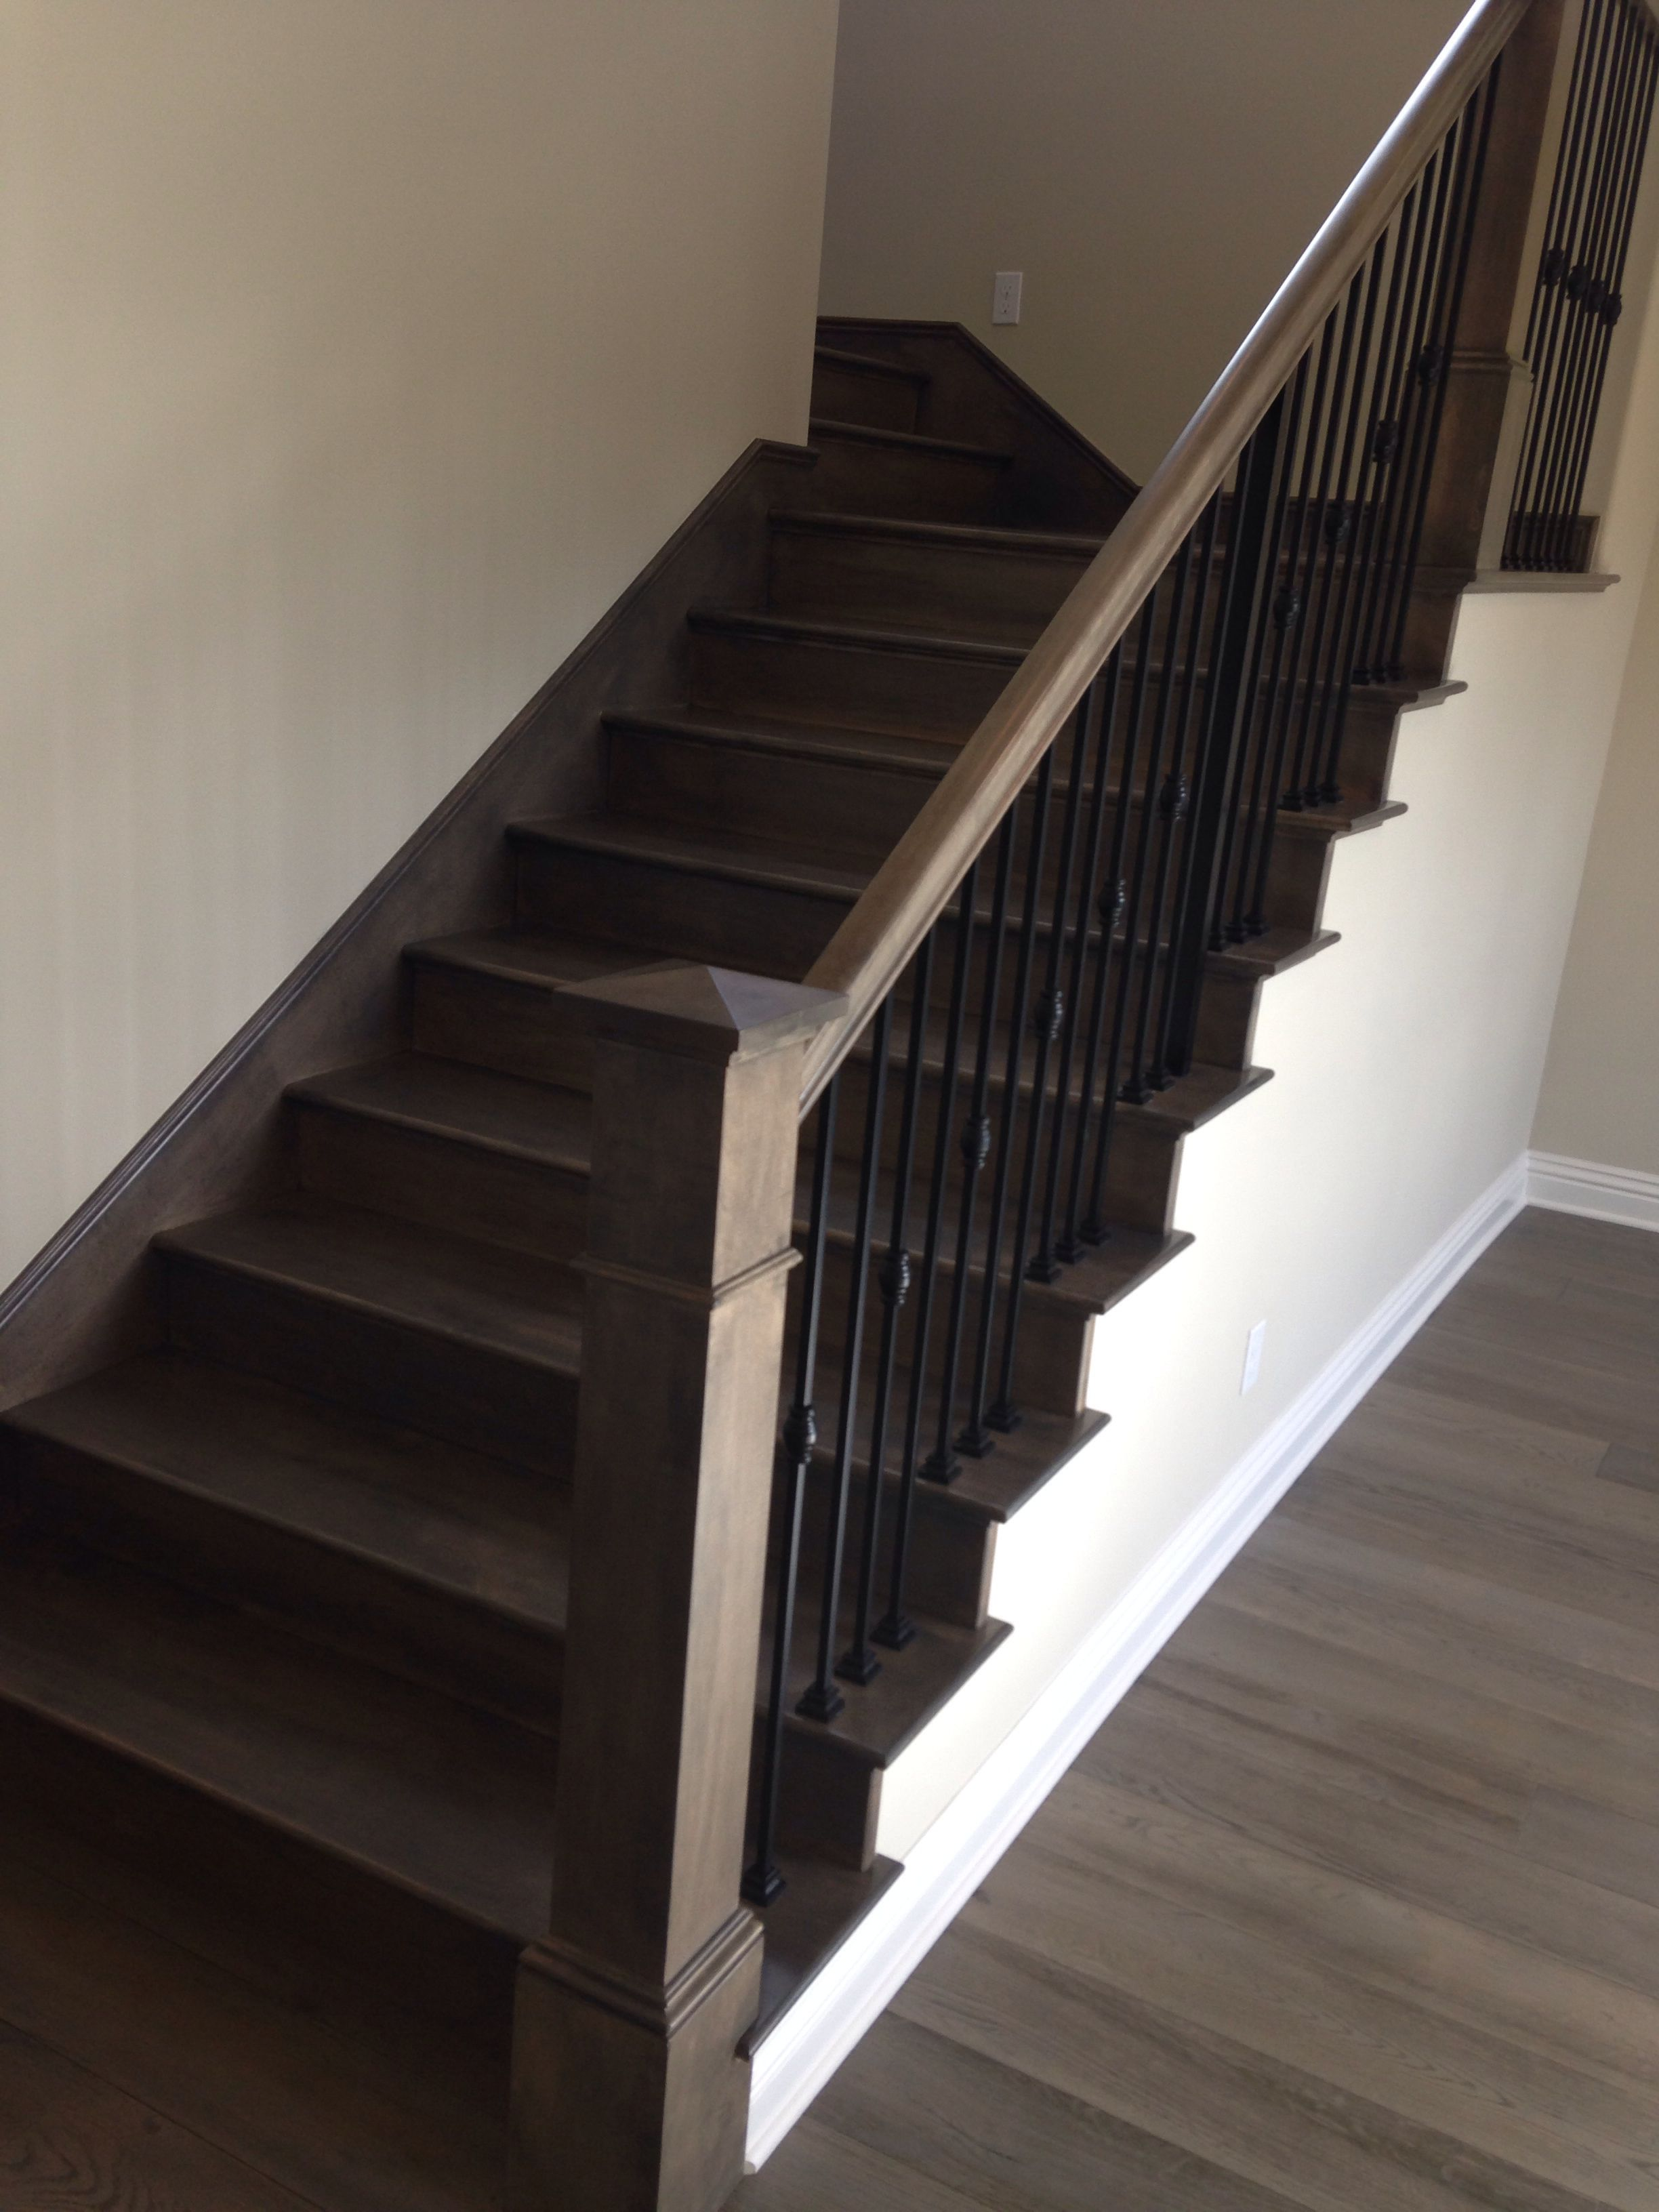 Best Gaetano Silver Fox Wood Floor And Stair System With 400 x 300